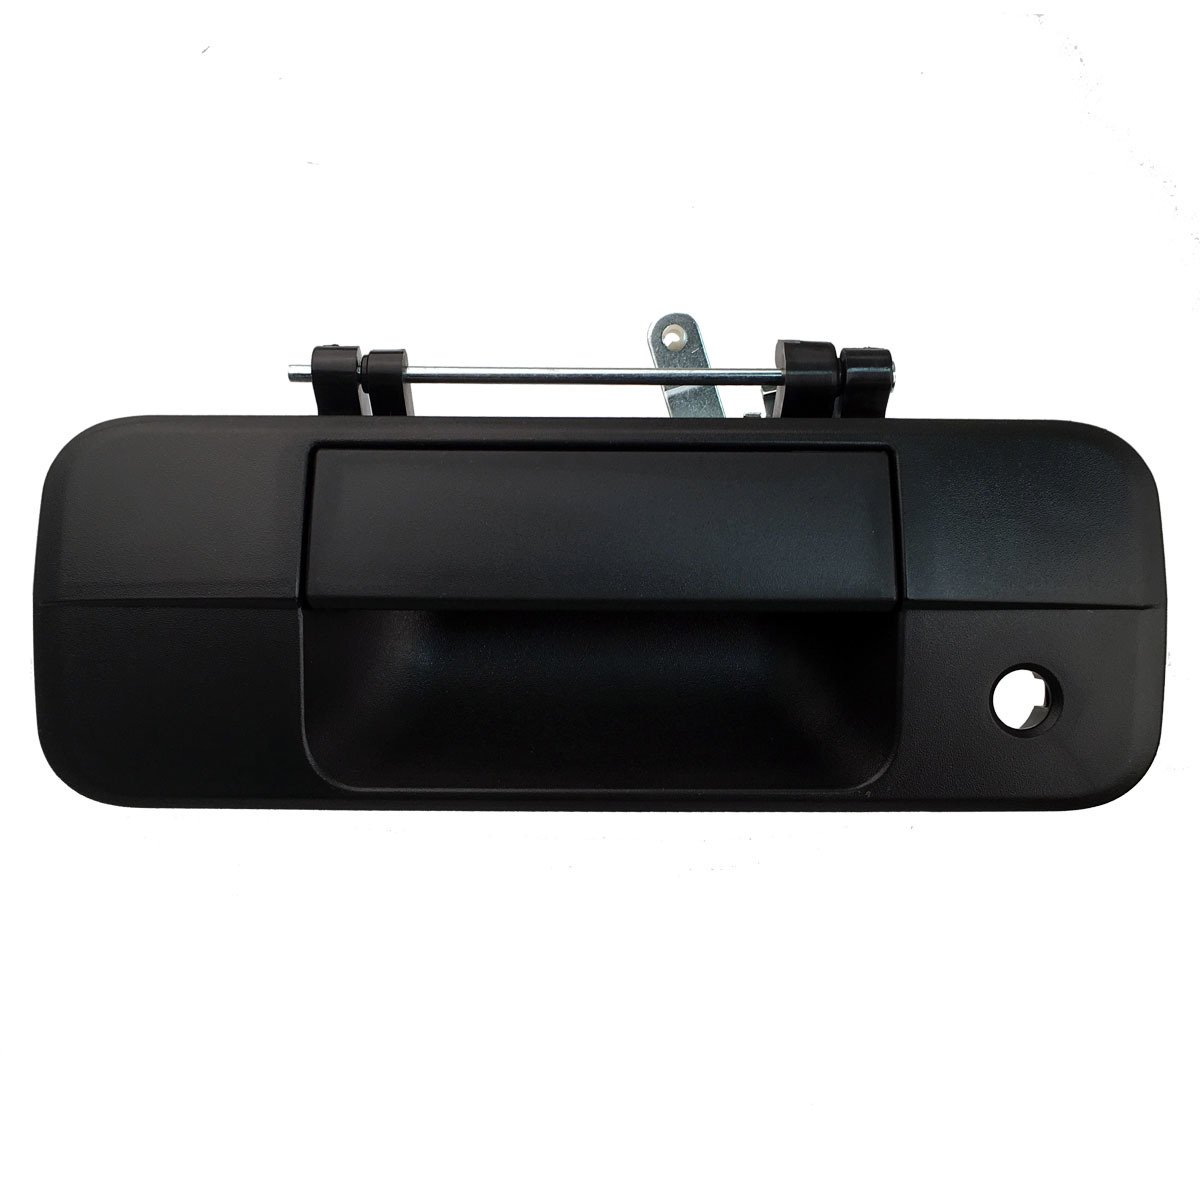 2007-2013 Toyota Tundra Pickup Truck Black Textured Tailgate Liftgate Door Handle (2007 07 2008 08 2009 09 2010 10 2011 11 2012 12 2013 13) by Aftermarket Auto Parts